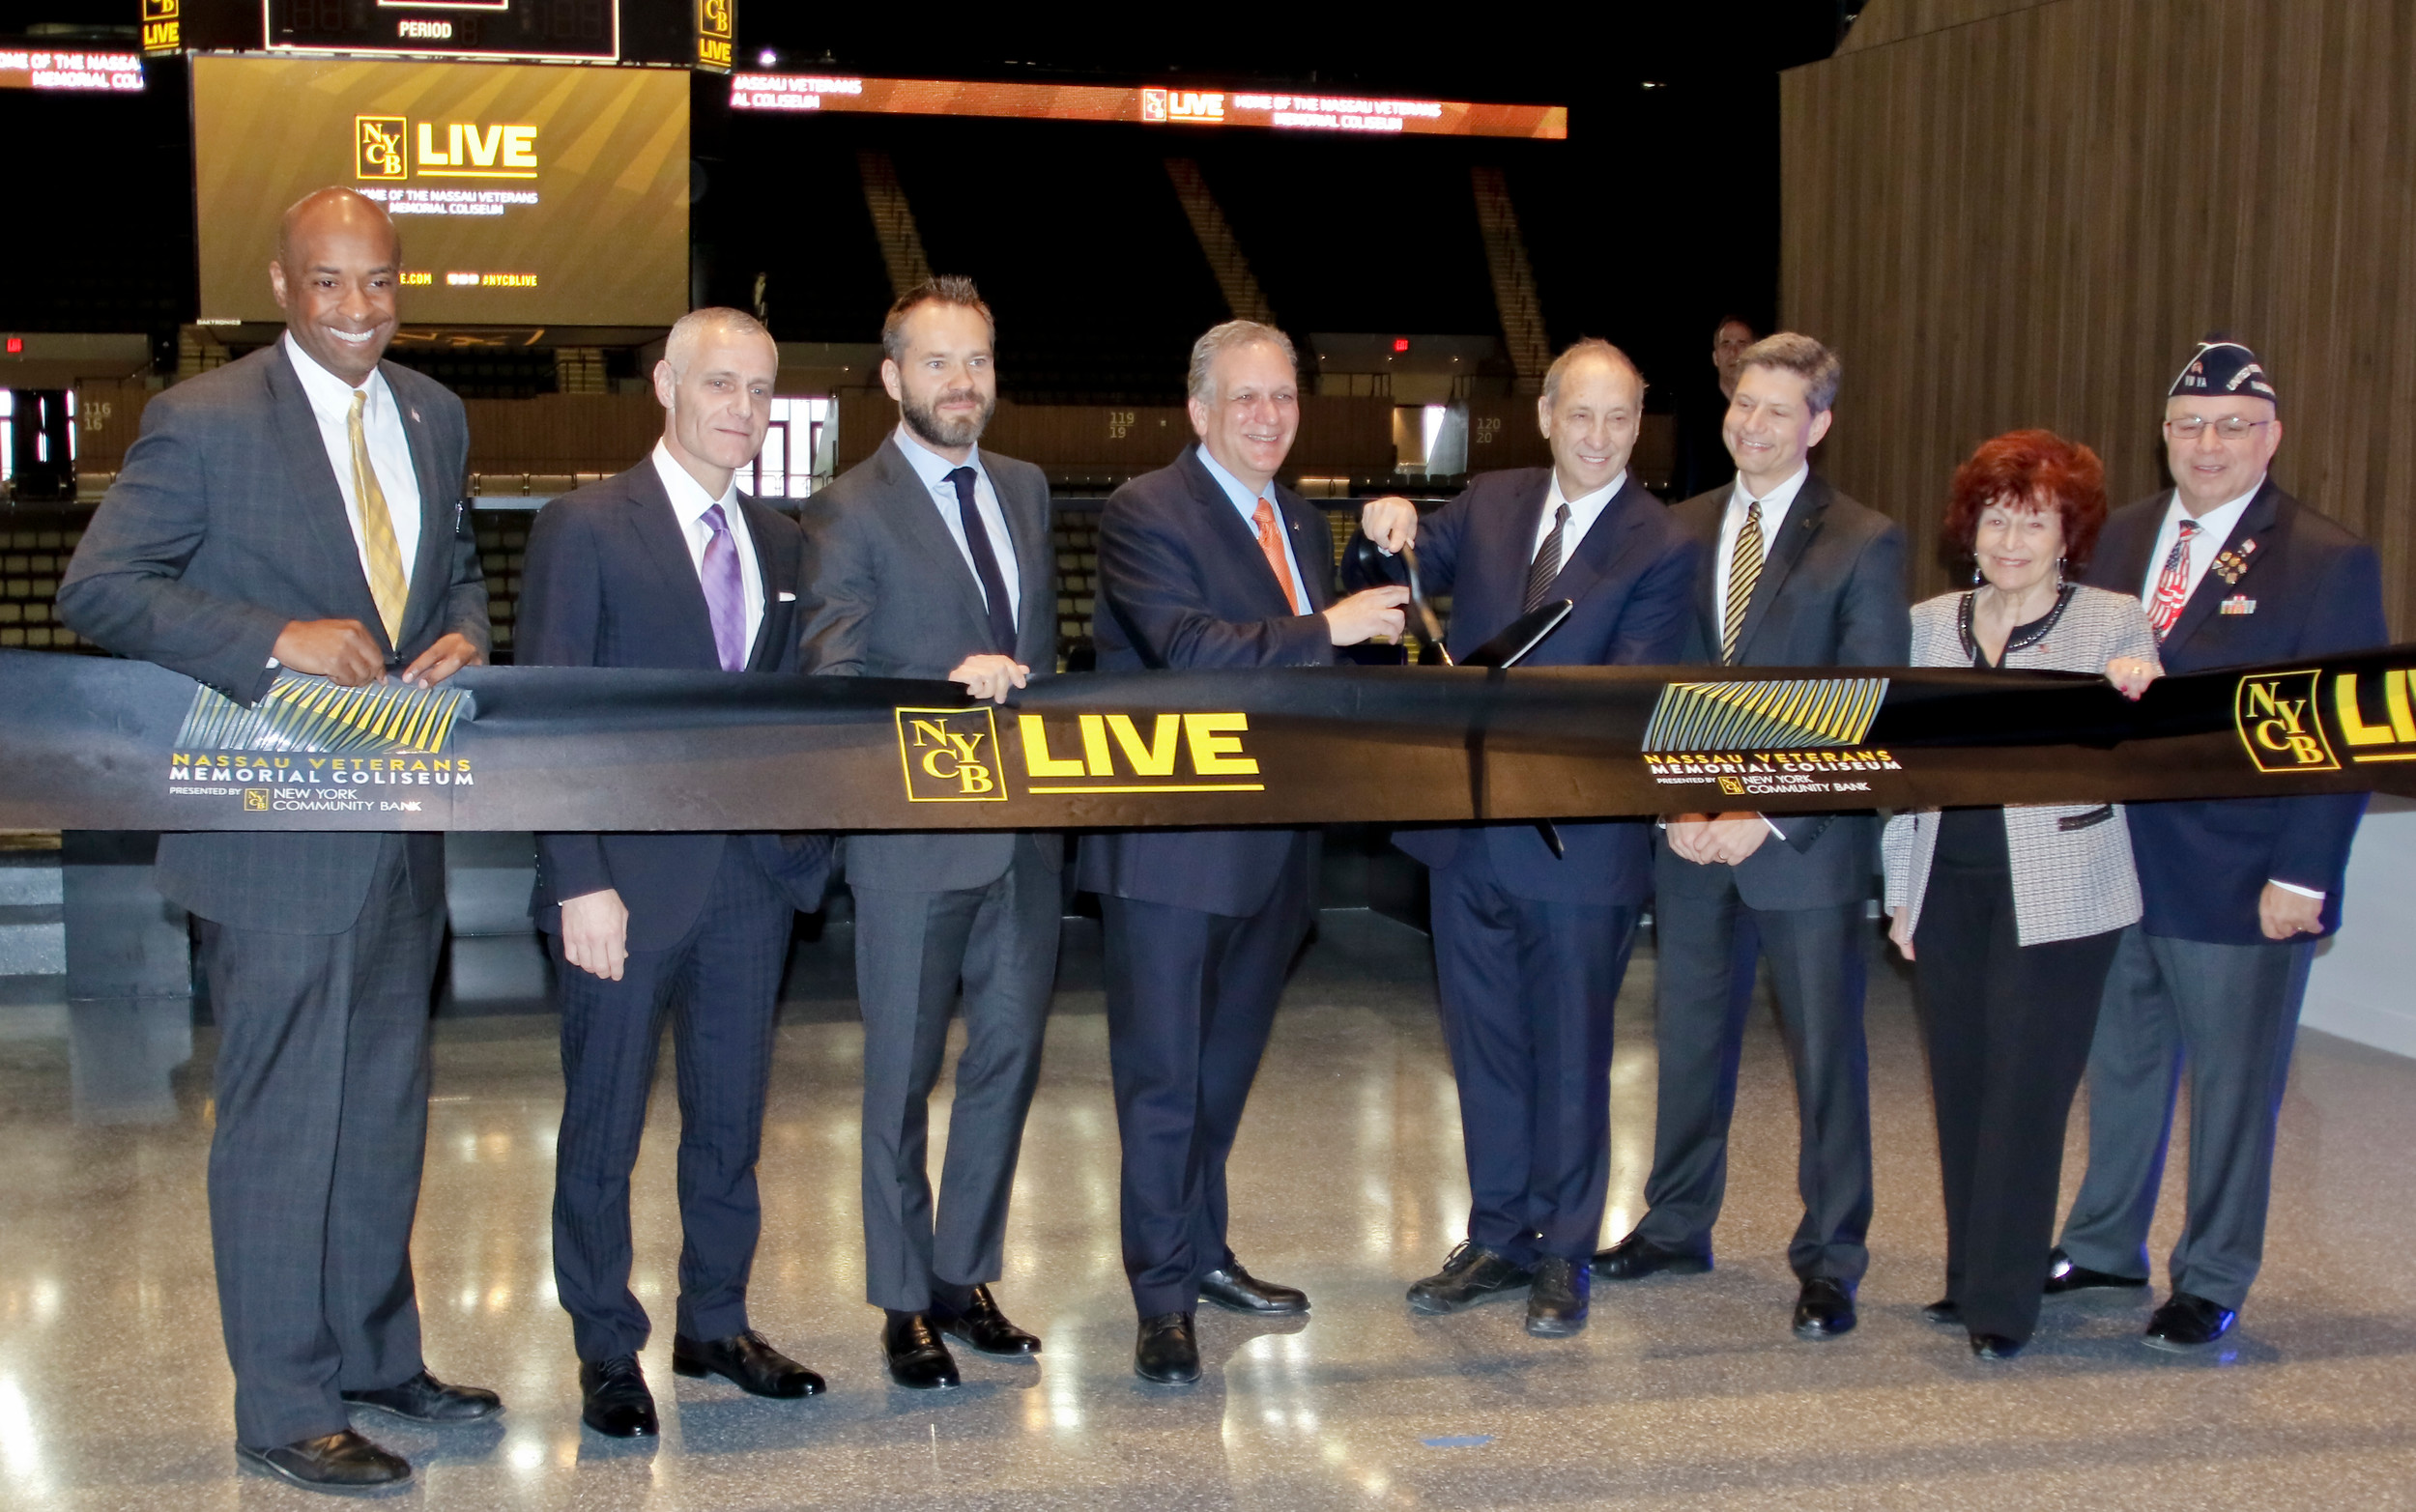 Ribbon cutting at the new coliseum which has undergone a $165 million renovation project. From left, Kevan Abrahams, Brett Yormark, Dmitry Razumov, Ed Mangano, Bruce Ratner, Andrew Kaplan, Norma Gonsalves and Frank Colon.